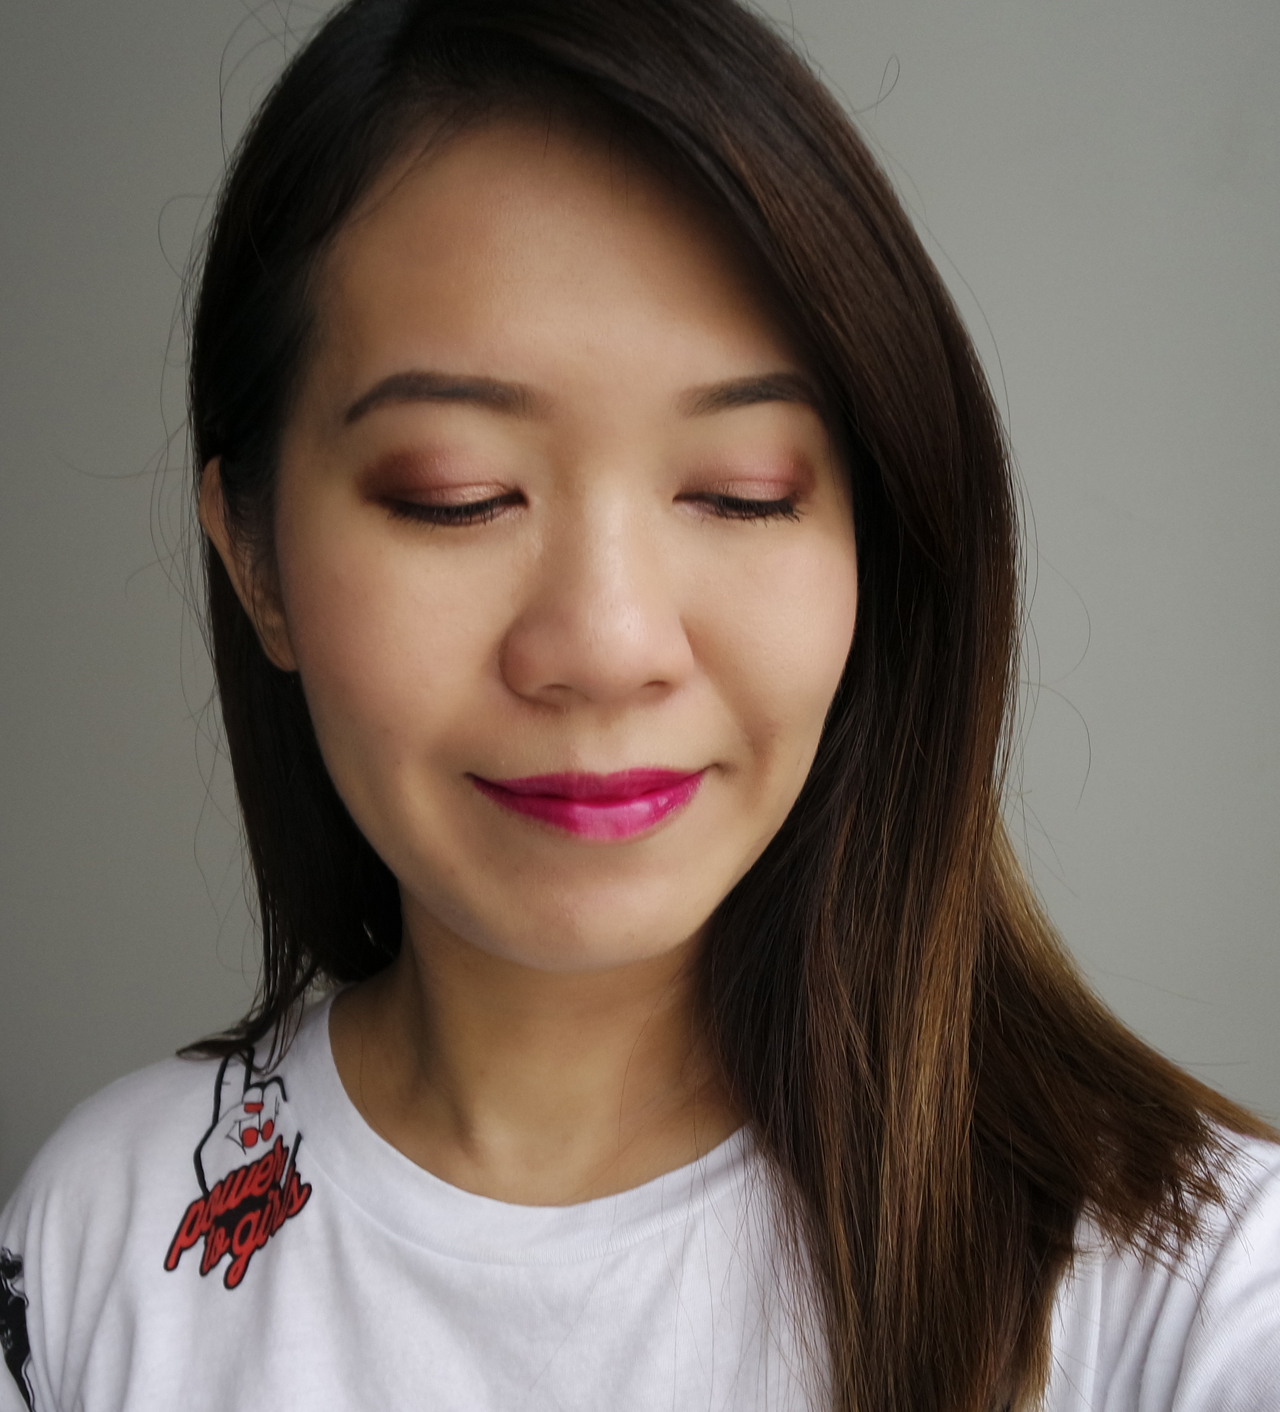 Dior 5 Couleur Palette 867 Attract makeup look